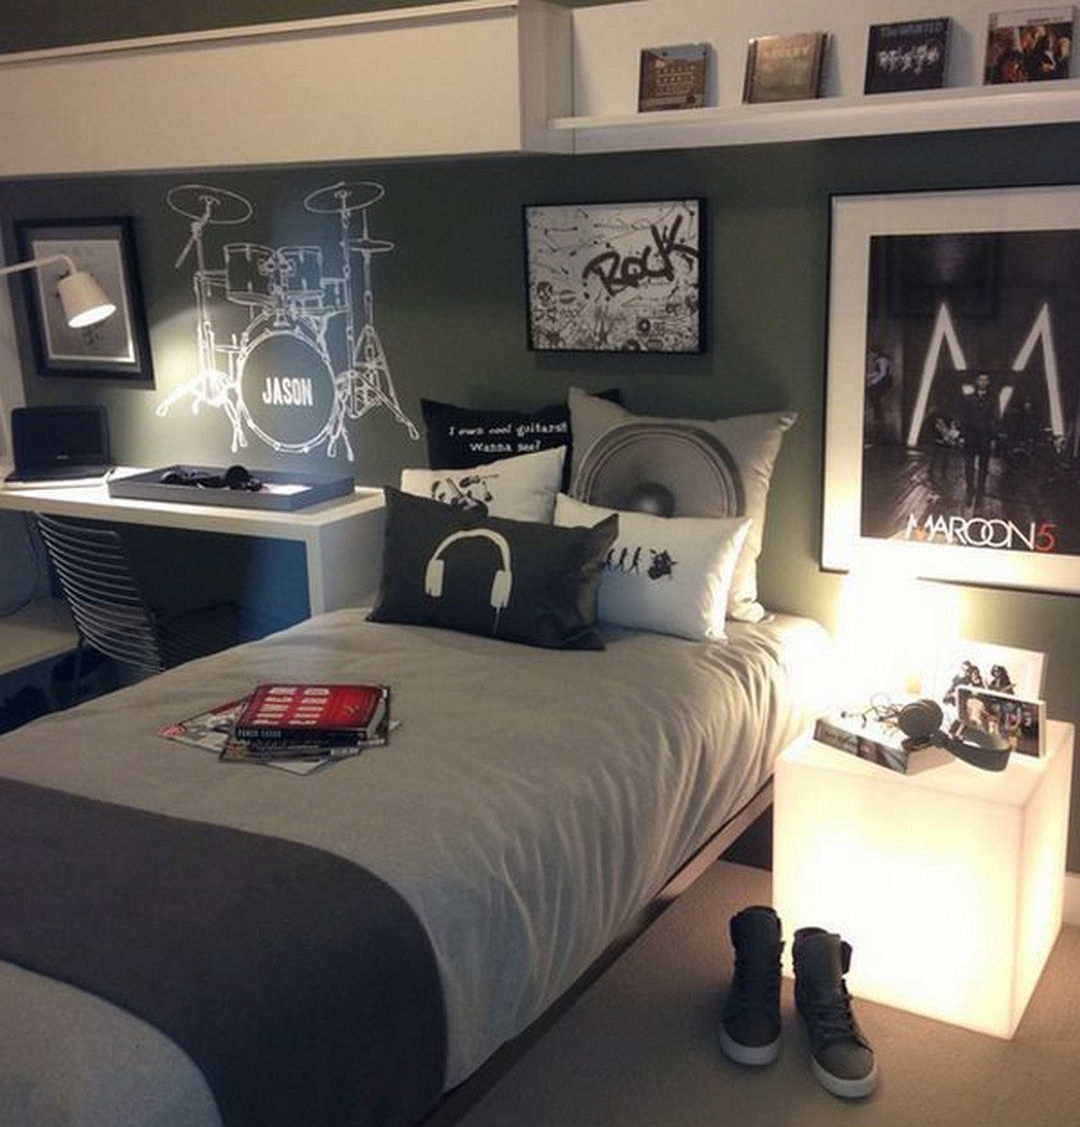 Attirant Coolest Teenage Bedrooms: 83 Awesome Decoration Ideas  Https://www.futuristarchitecture.com/16353 Teenage Bedrooms.html